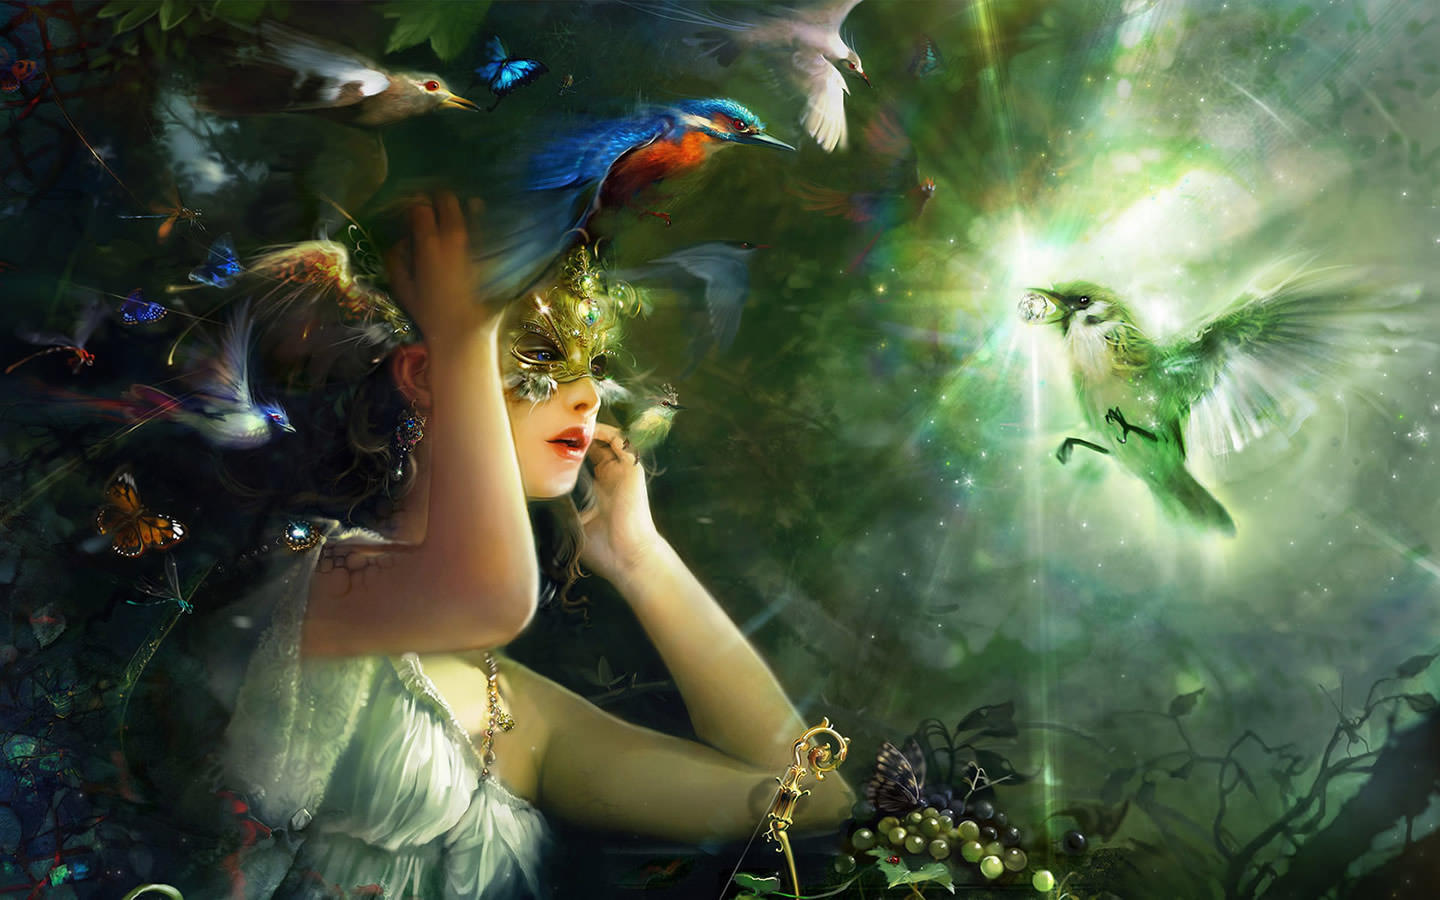 25 Fantasy Wallpapers You Would Love To Use 1440x900